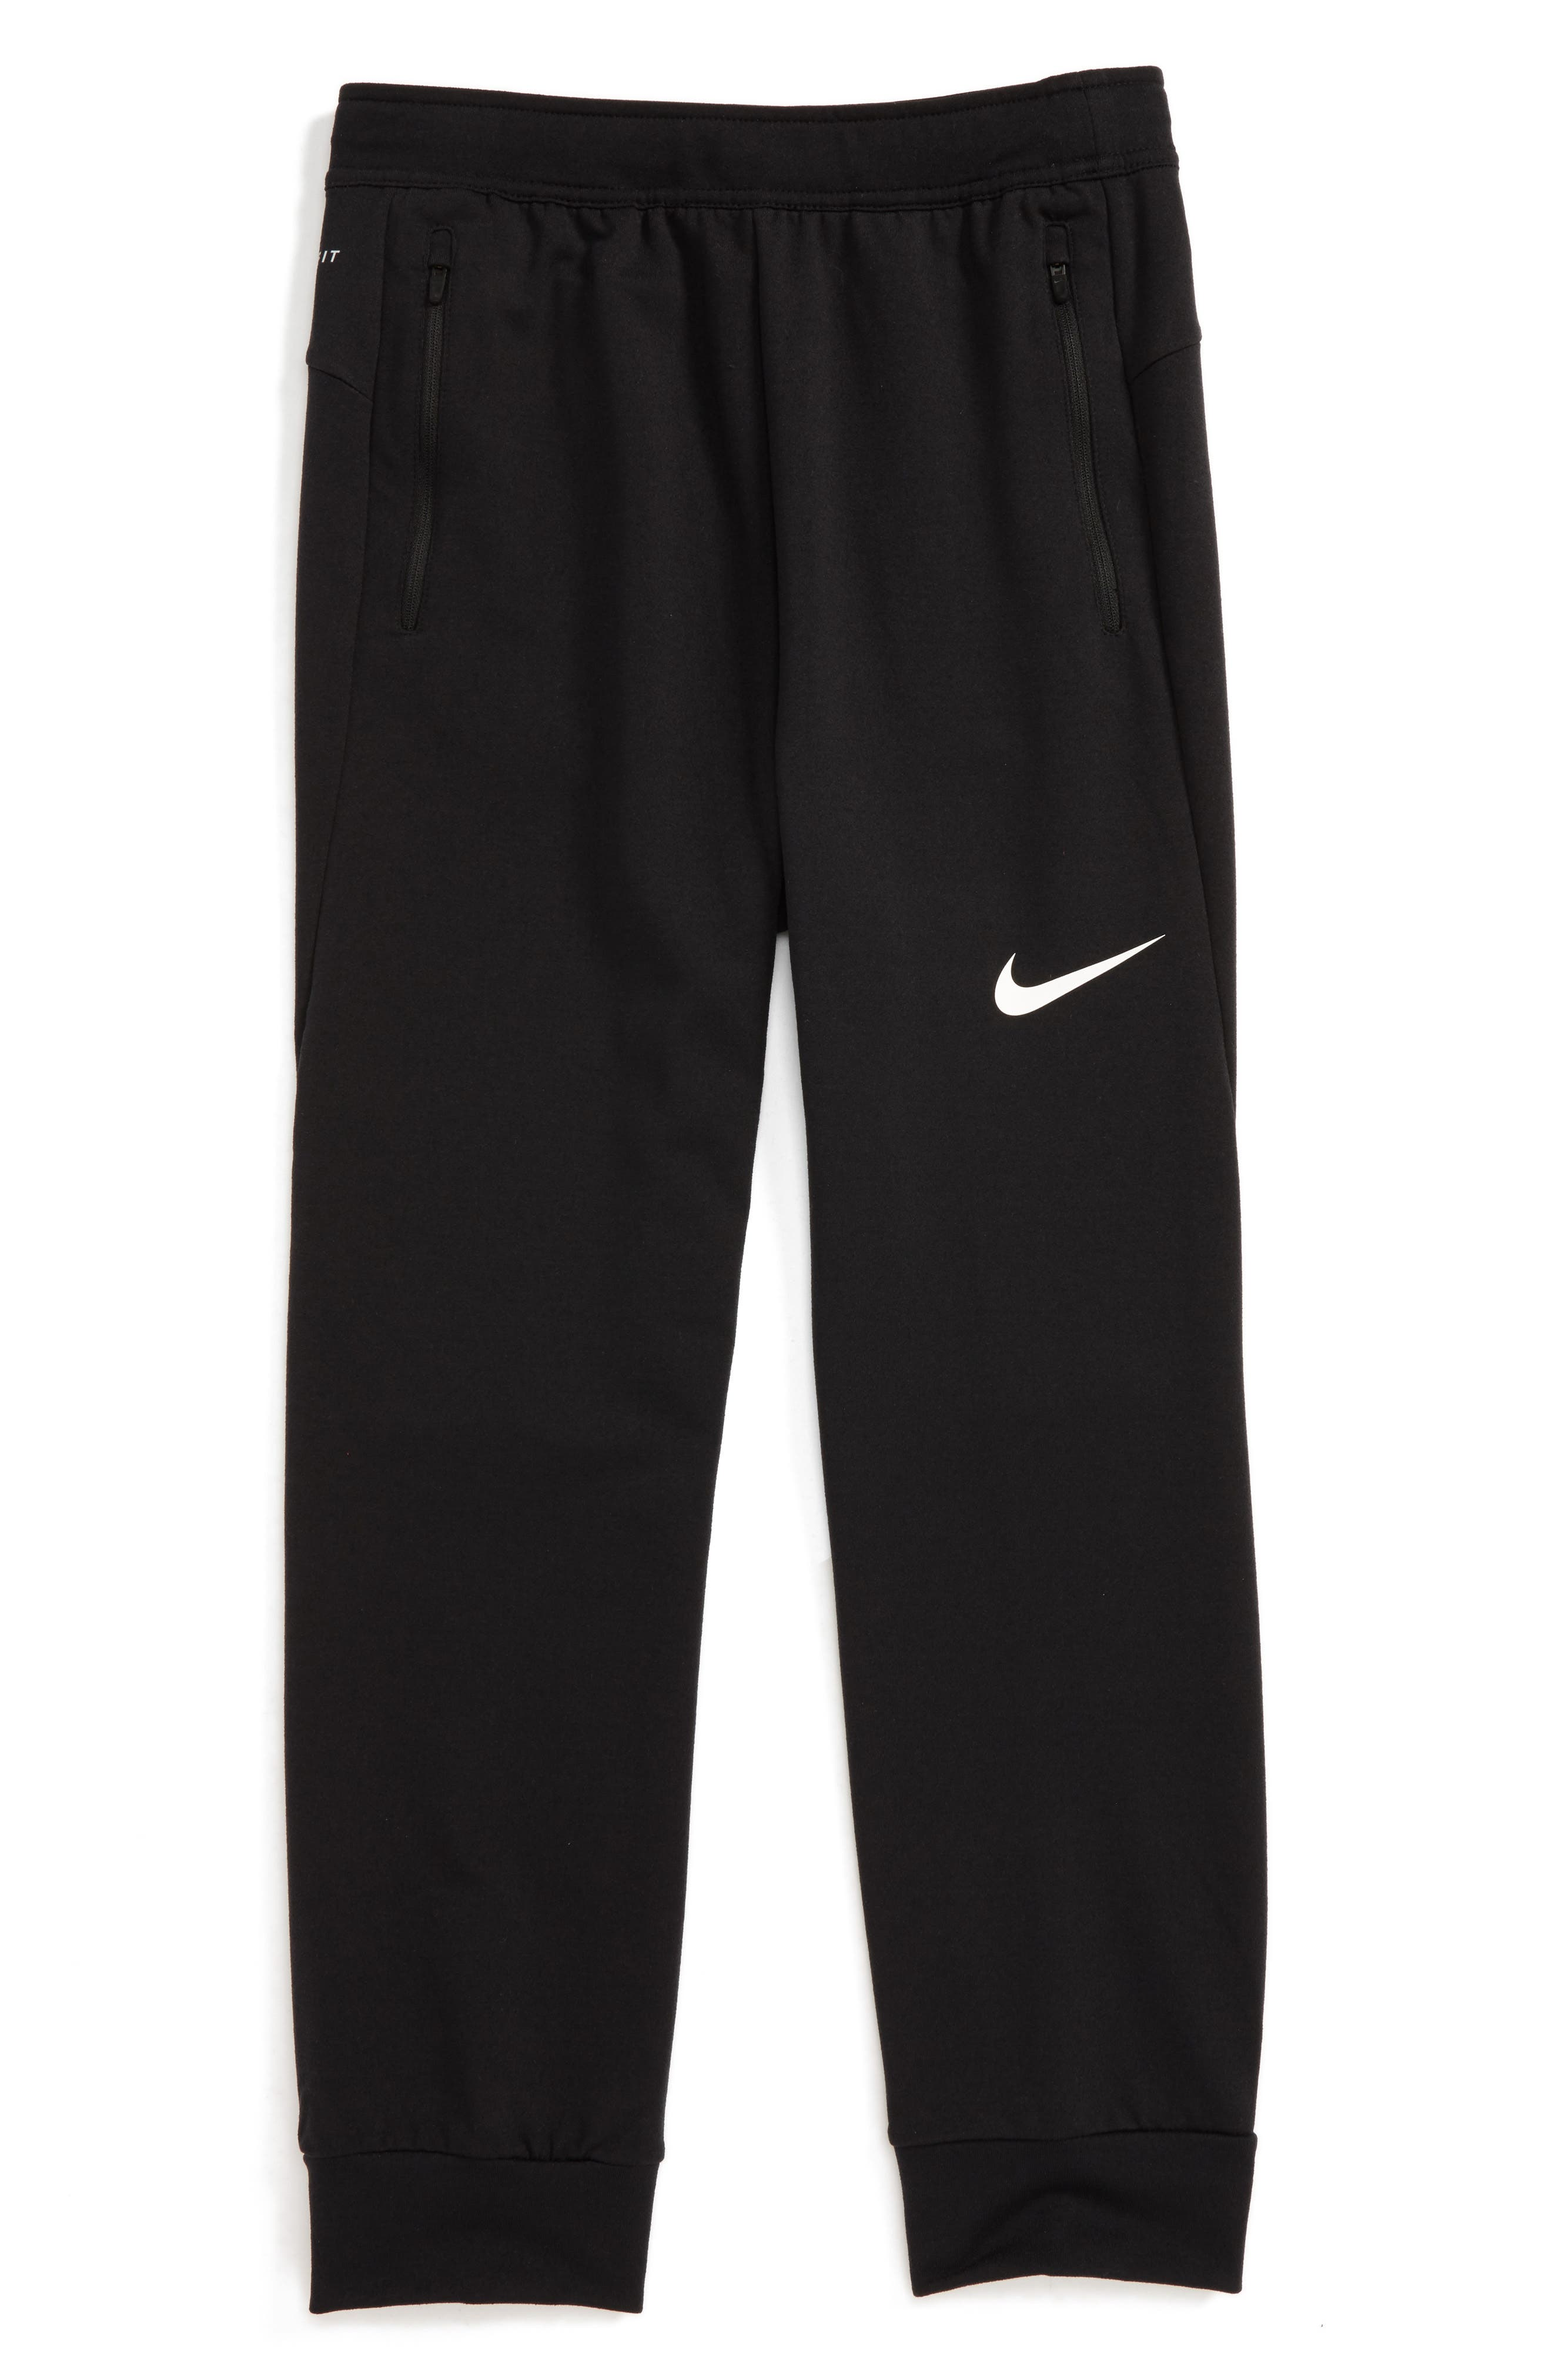 NIKE Dri-FIT Hyper Fleece Pants